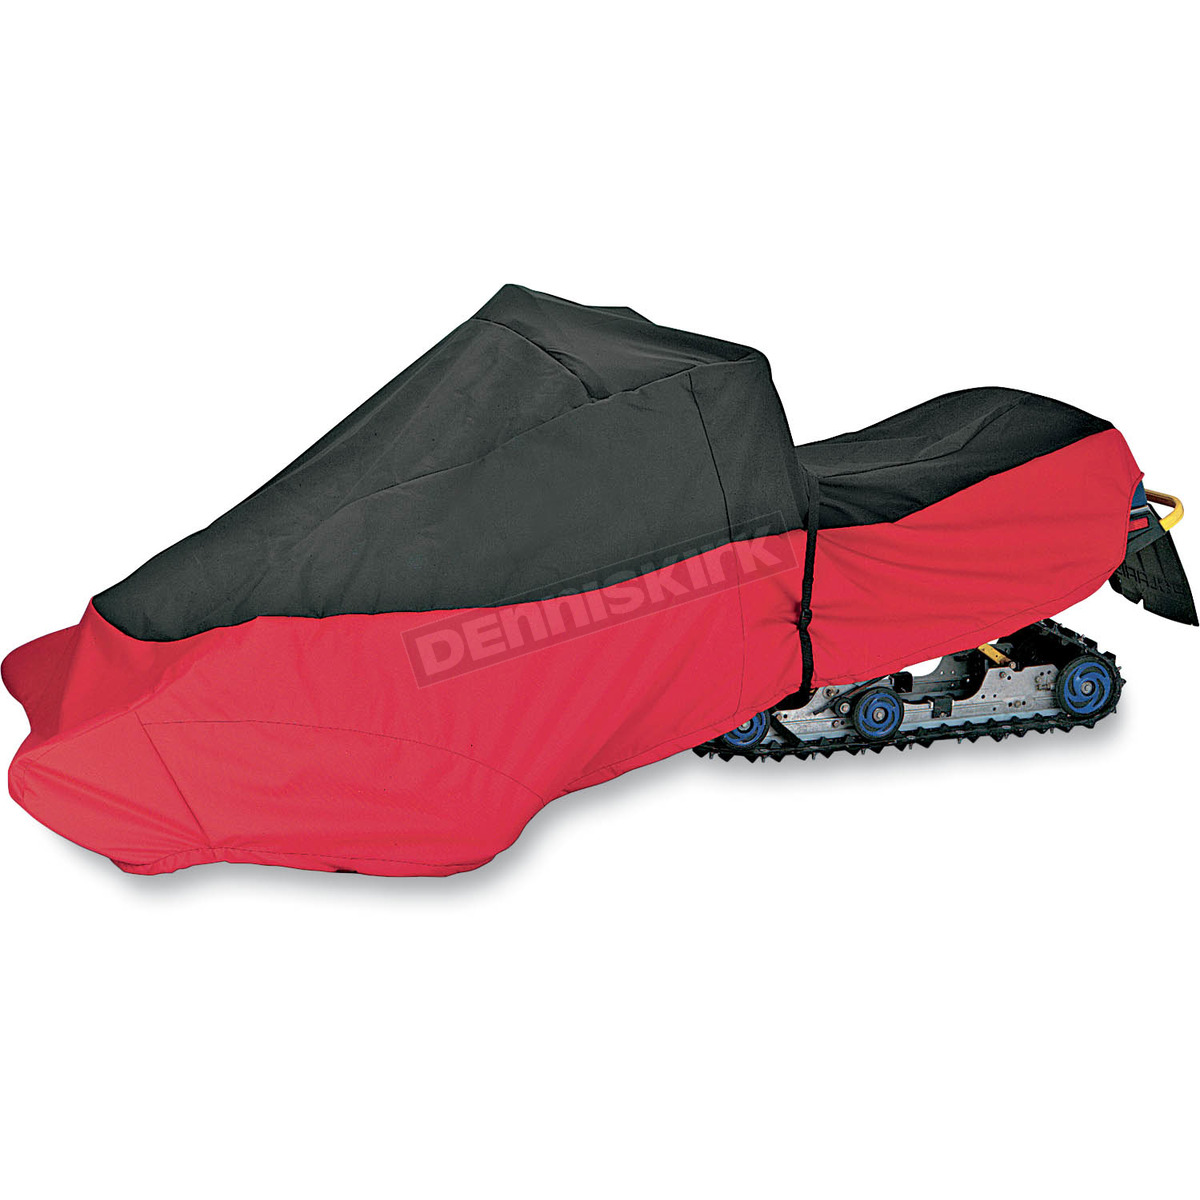 Red/Black Total Cover - 4003-0106